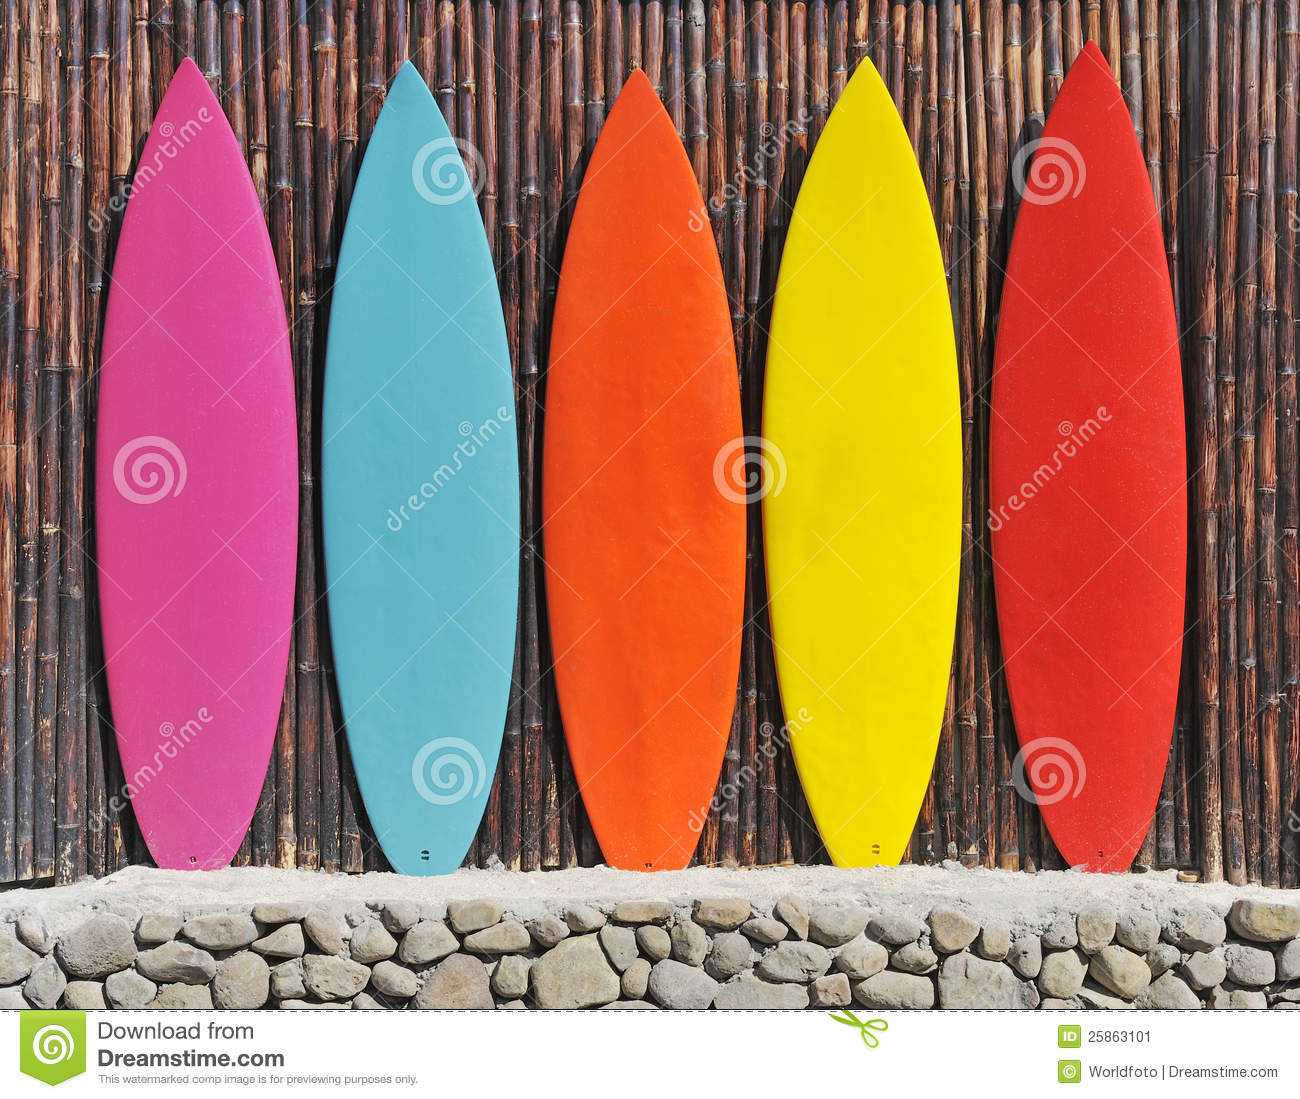 Colored surfboards